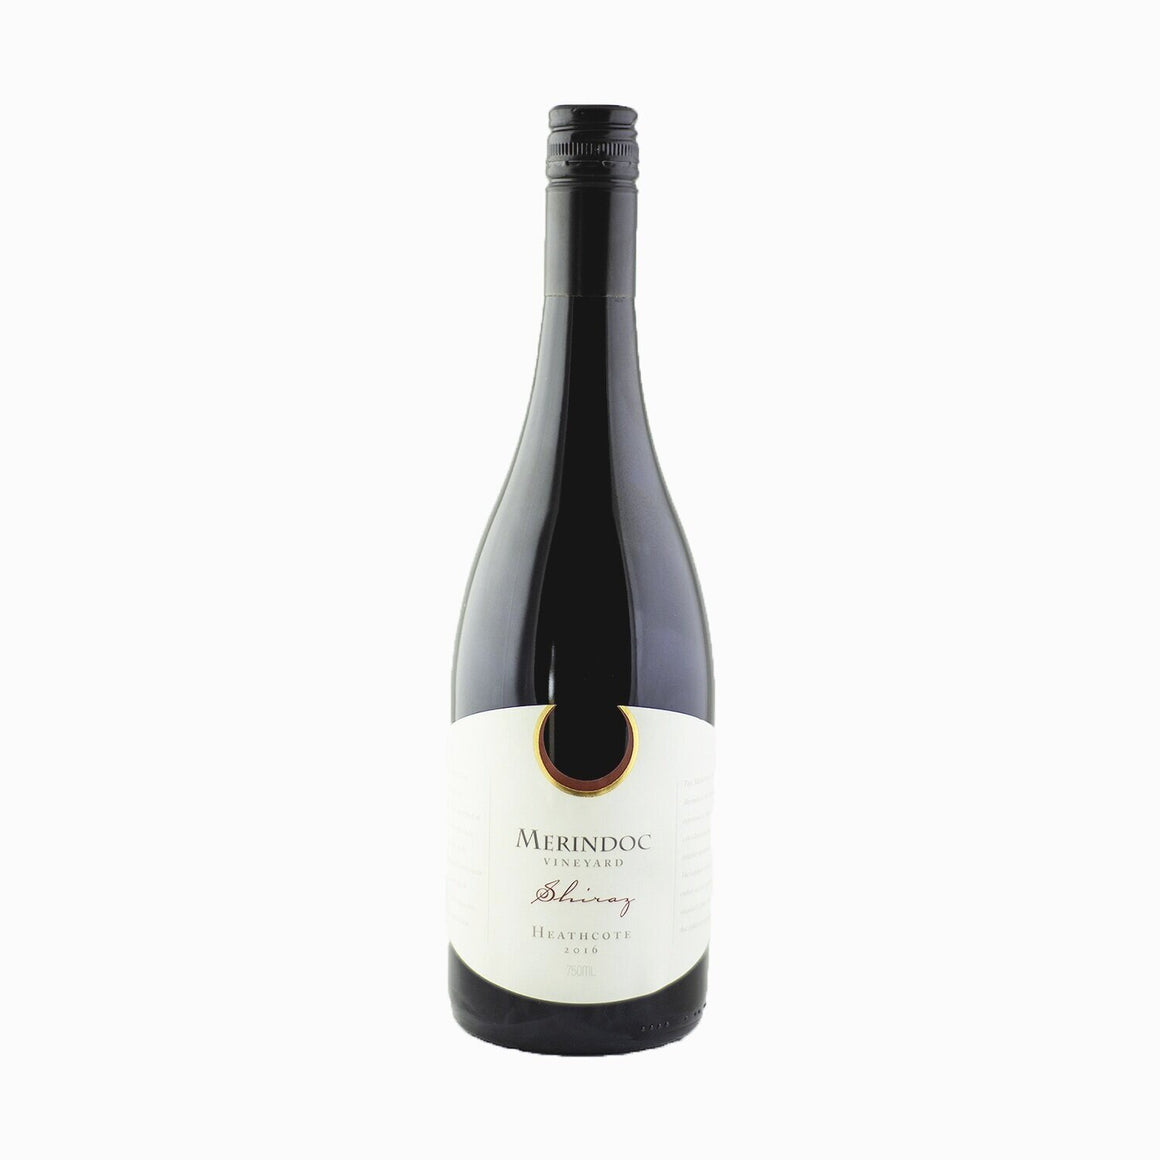 Merindoc Vineyard Shiraz 2017